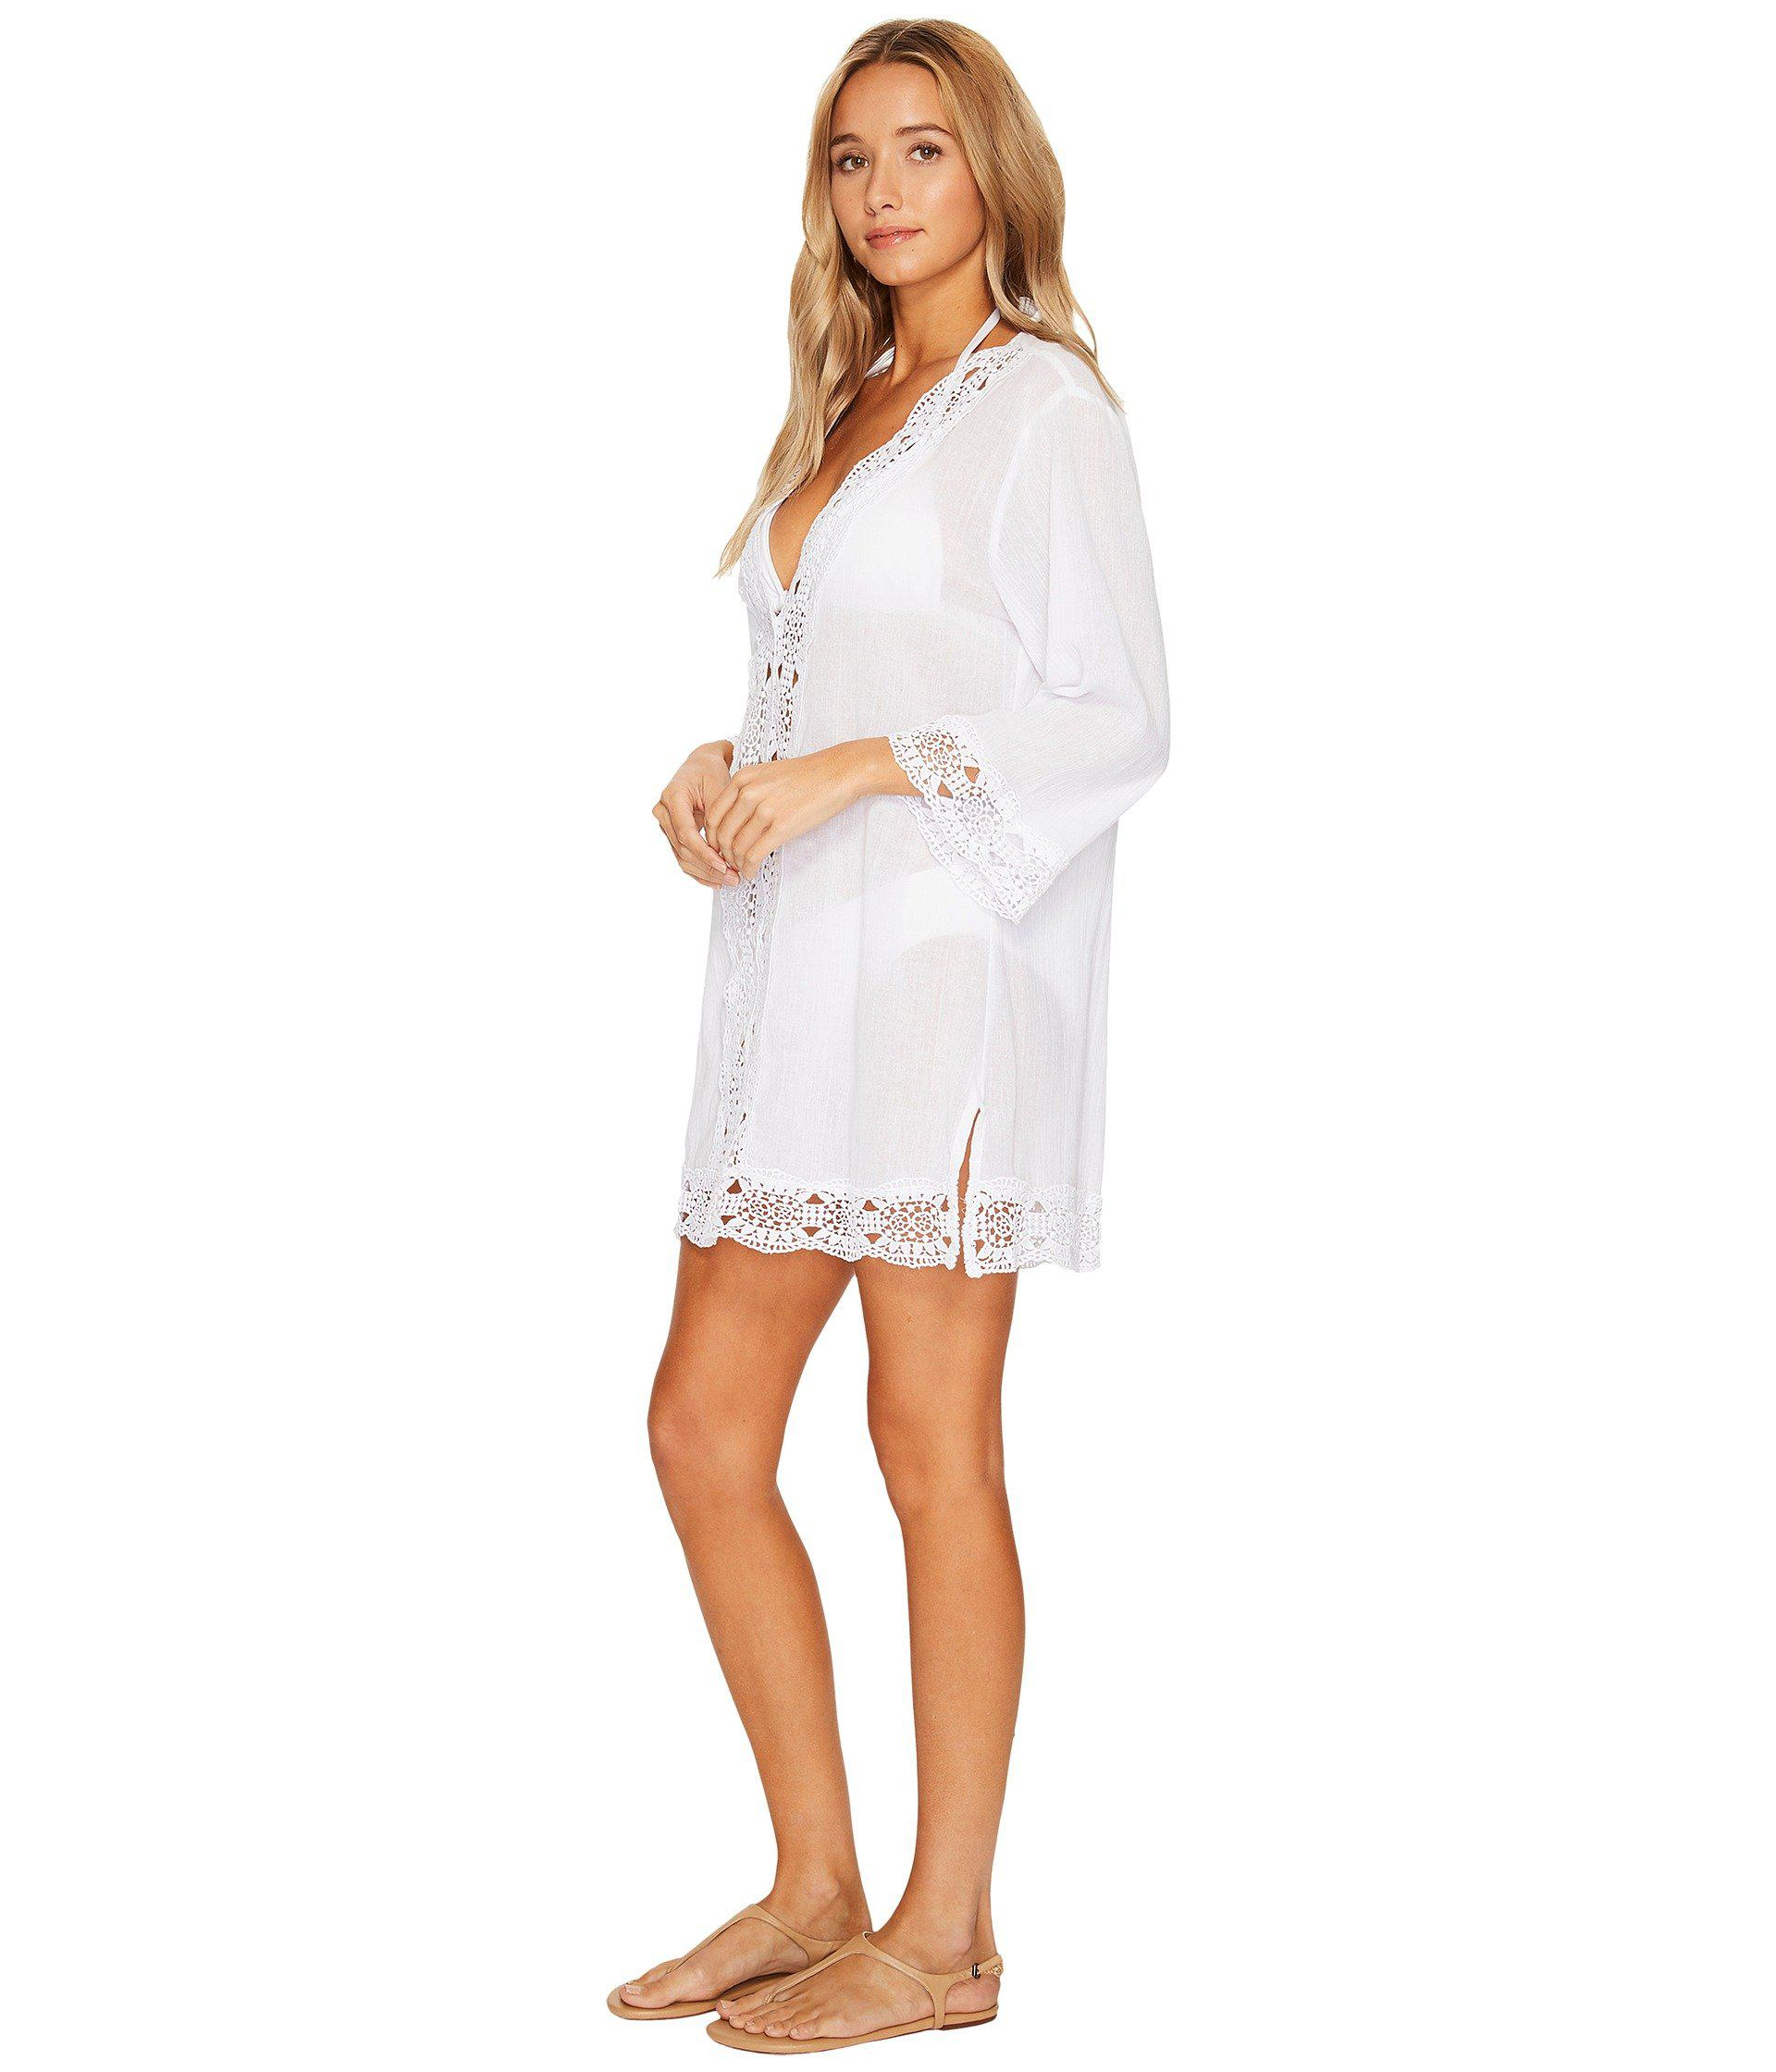 46d6940f2782d Lyst - La Blanca Island Fare V-neck Tunic Cover-up (black) Women's Swimwear  in White